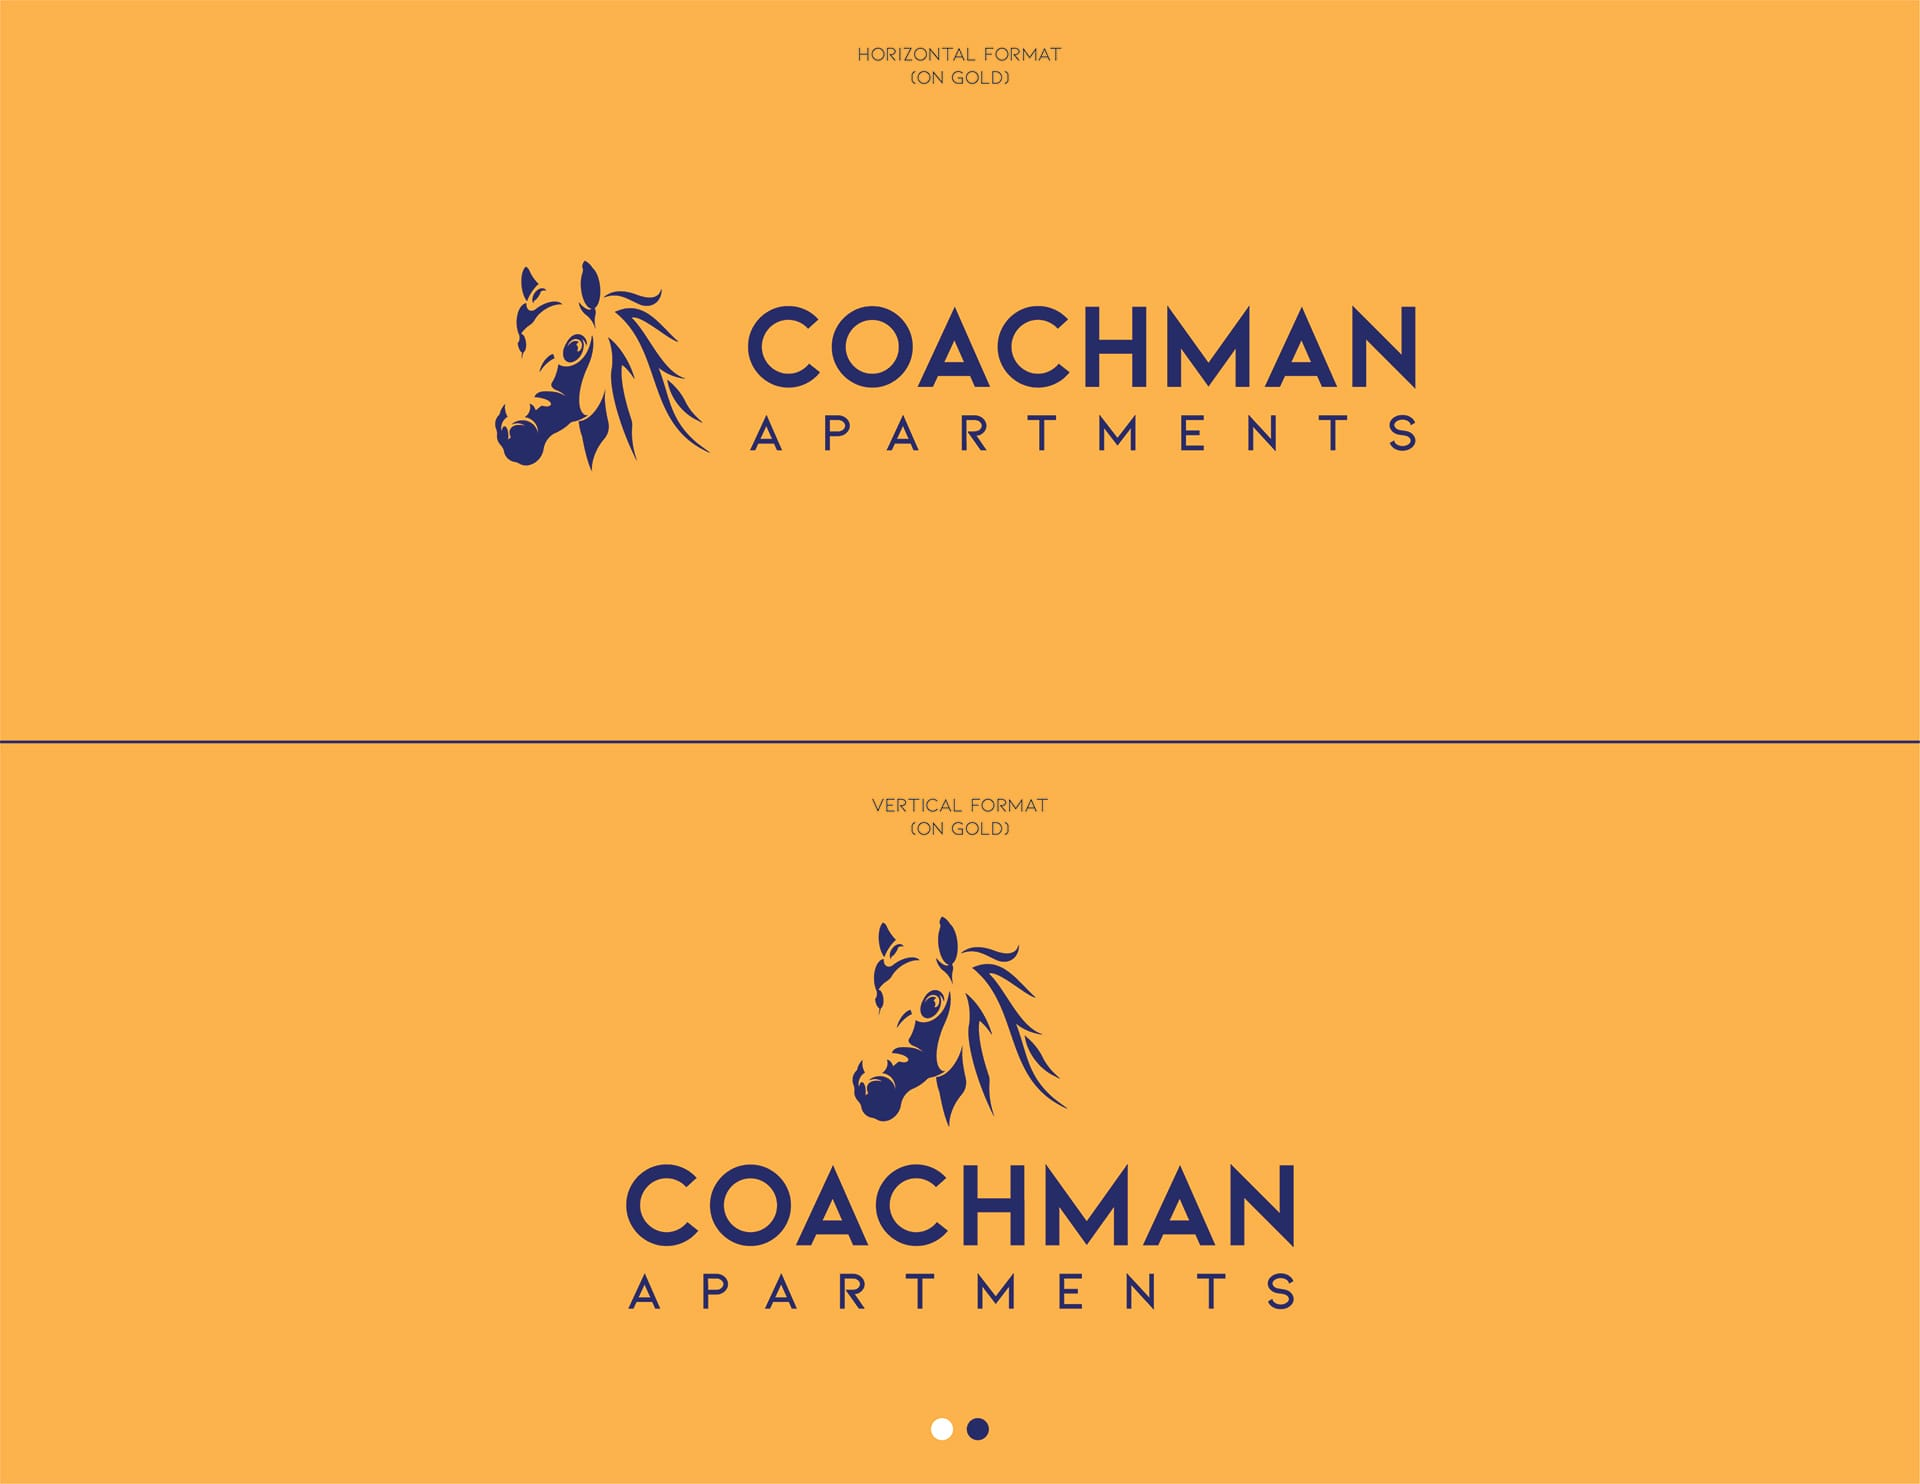 Coachman Logo Design - On Gold